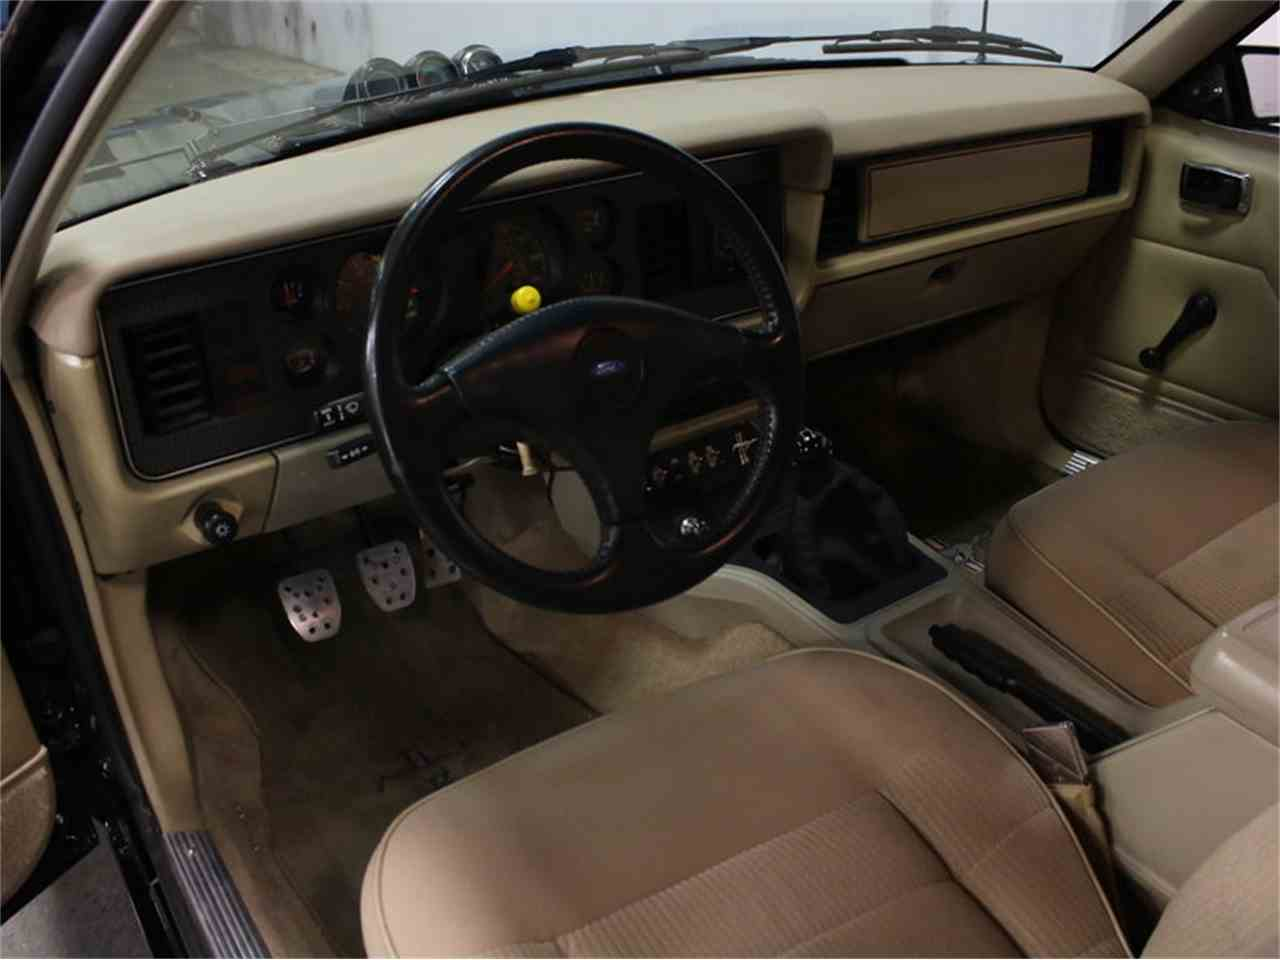 Large Picture of '86 Mustang SSP Interceptor located in Ft Worth Texas - $24,995.00 - JZNT